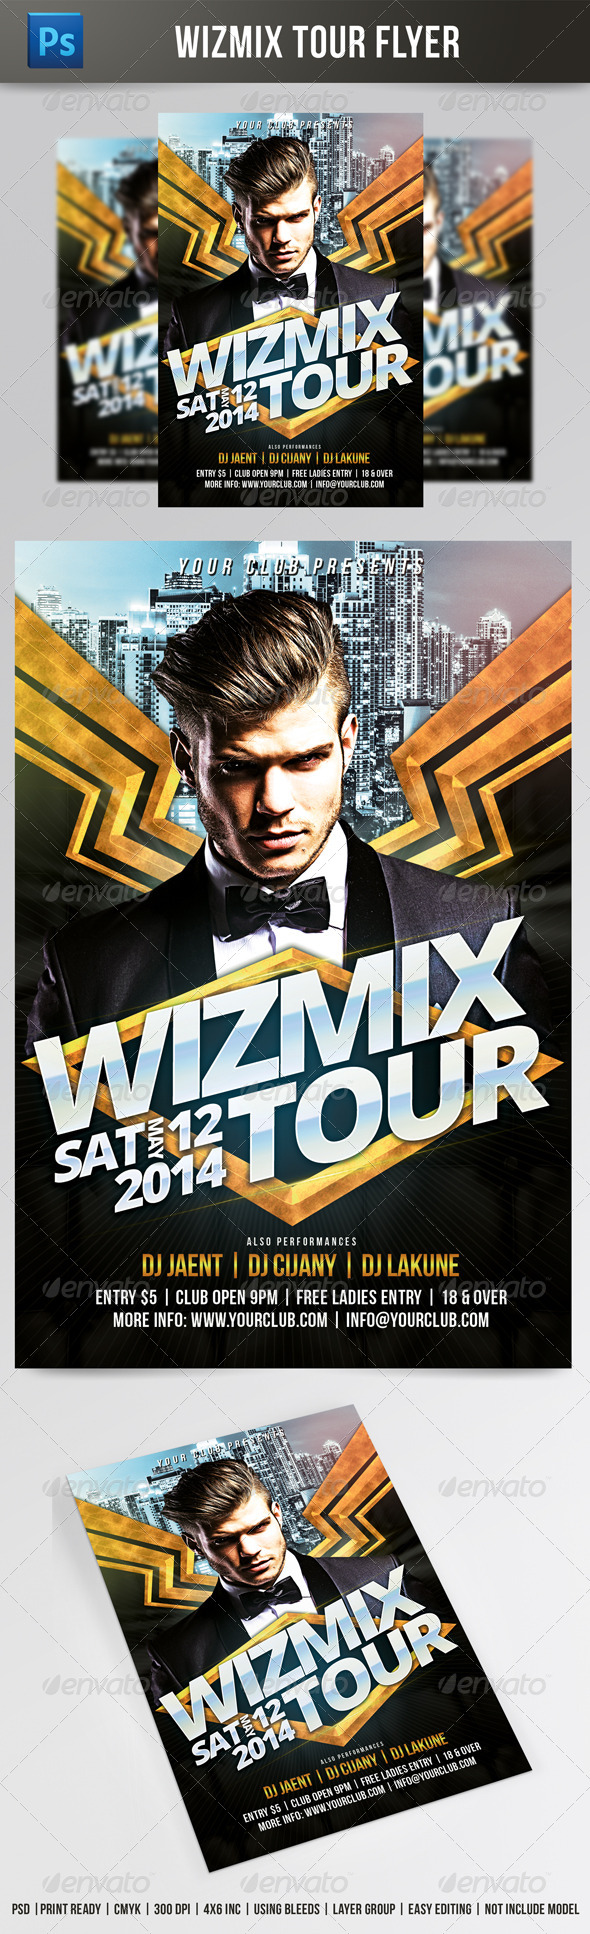 GraphicRiver Wizmix Tour Flyer 7814451